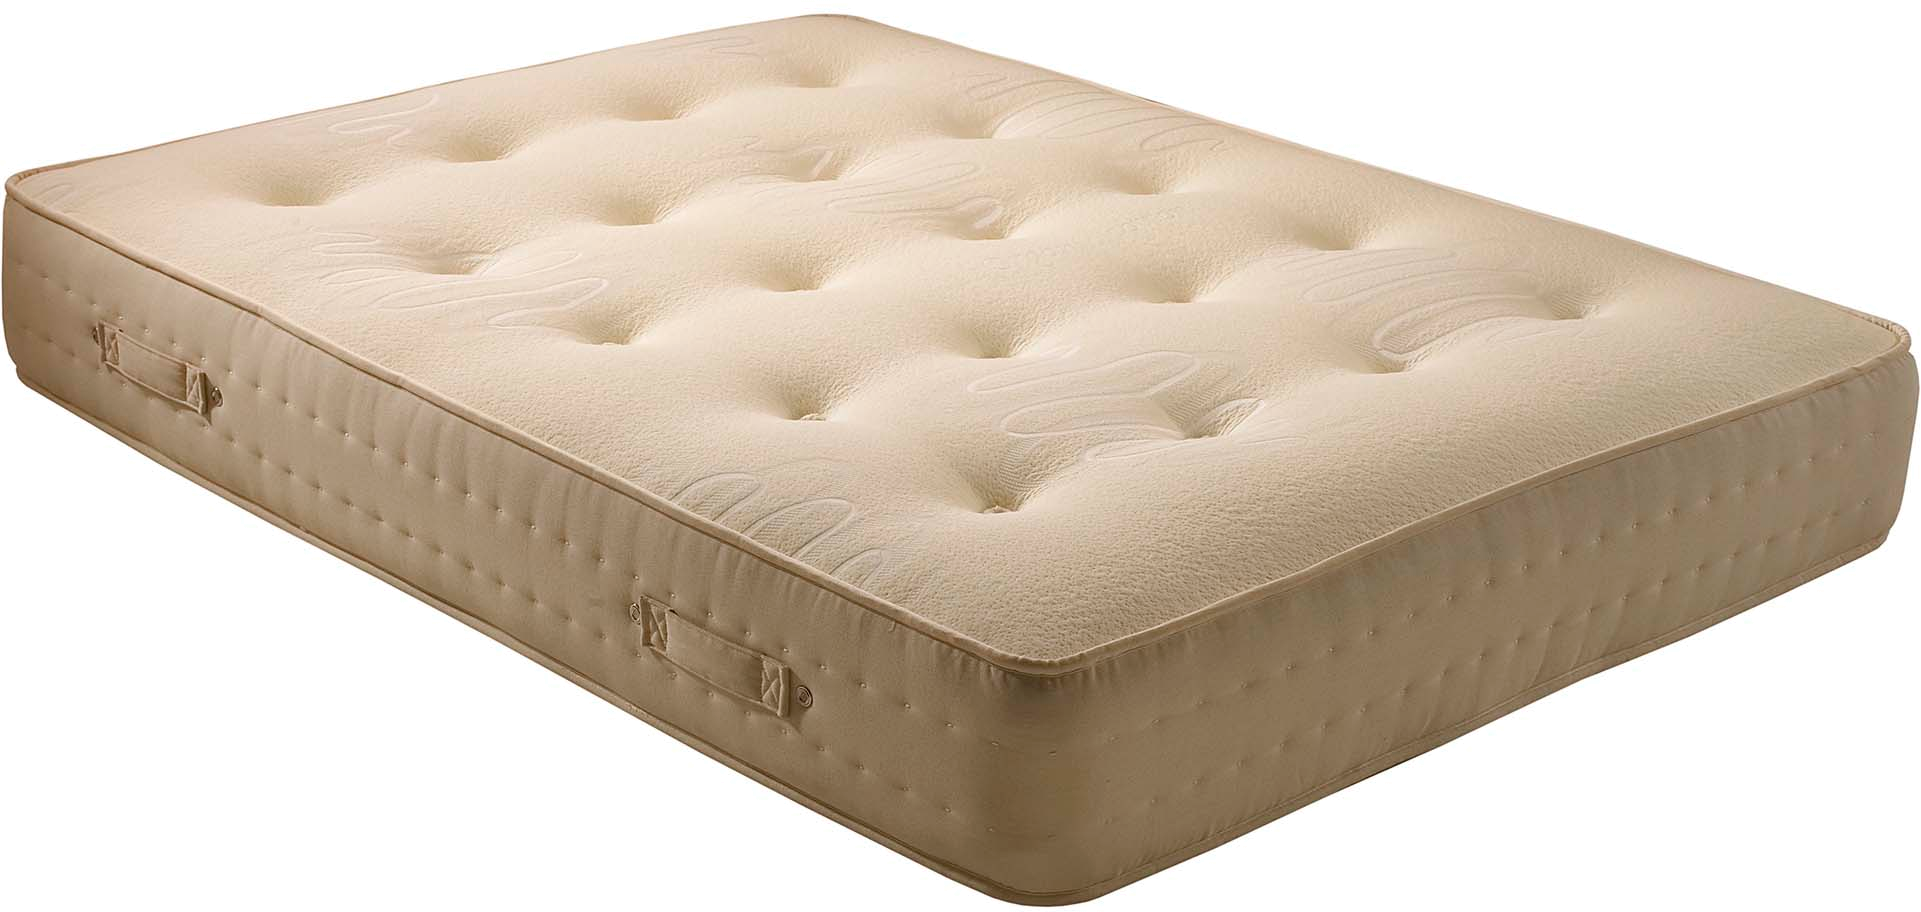 Clipart bed mattress. Png transparent images all